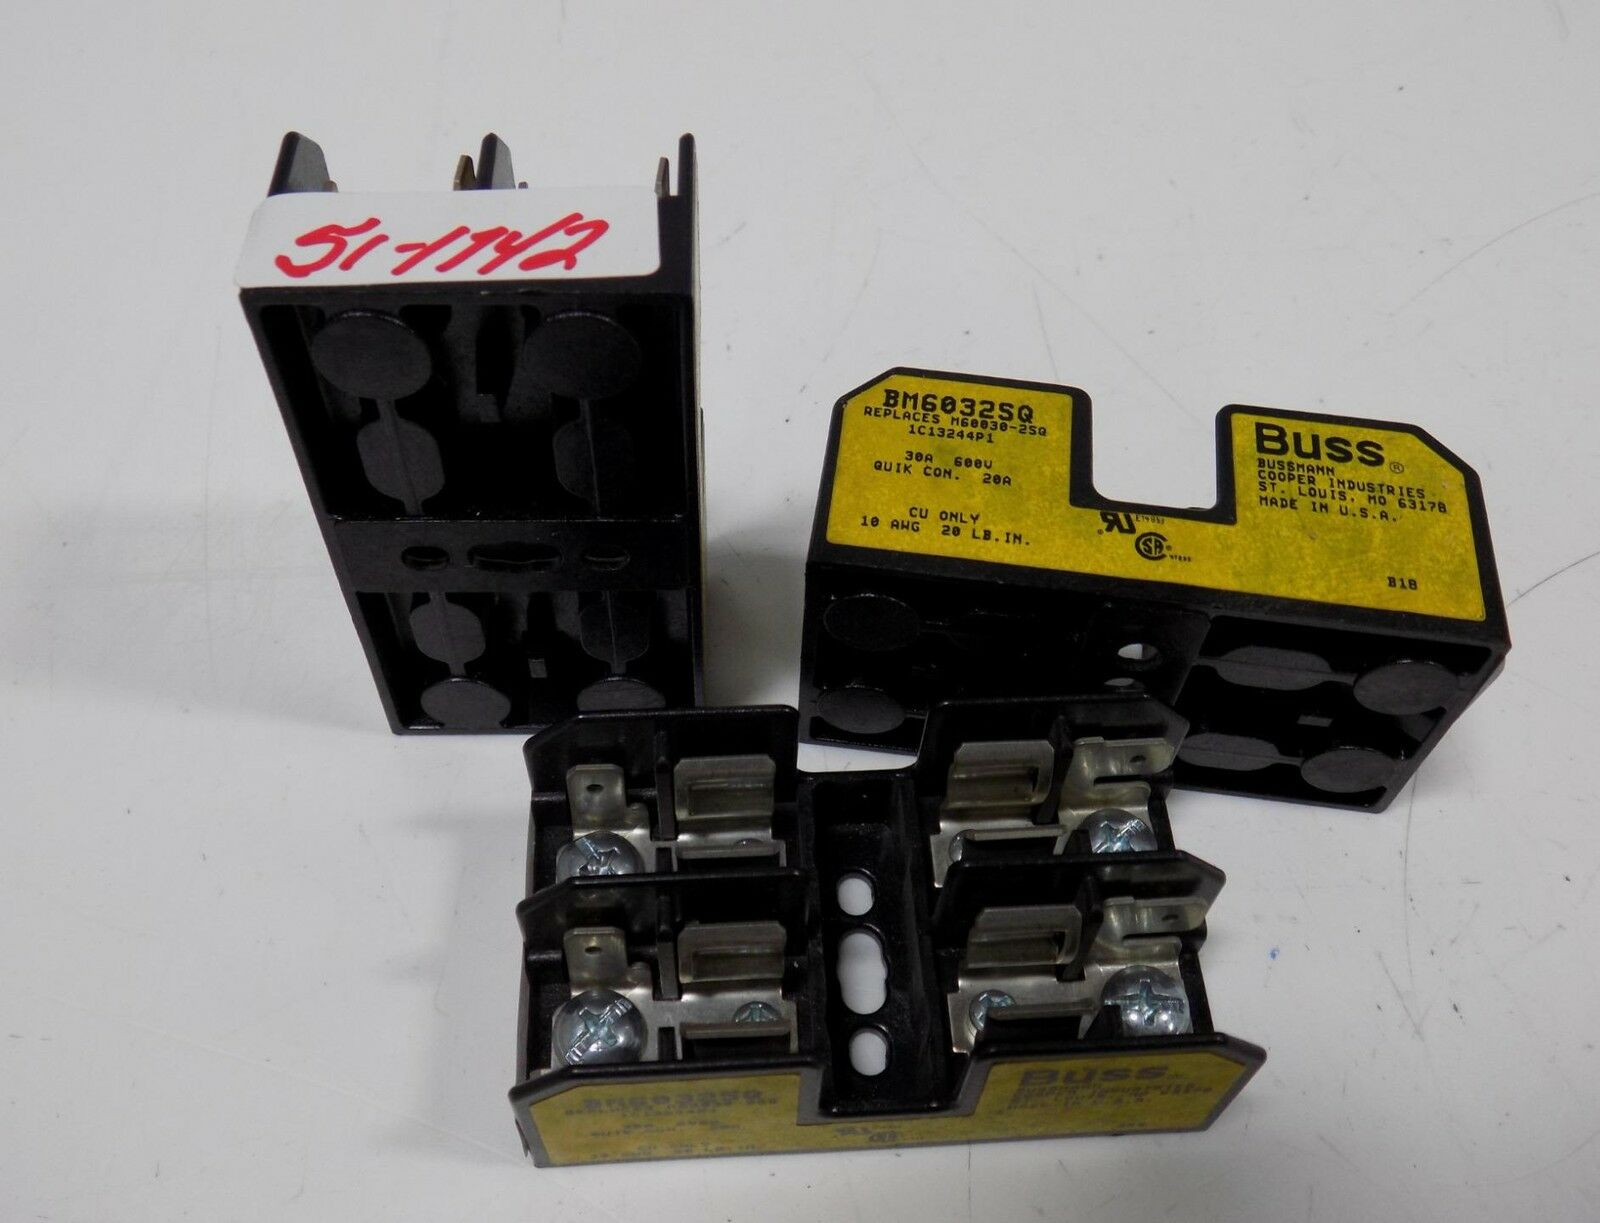 Bussmann 30a 600v Fuse Block Lot Of 3 Bm6032sq 2195 Picclick Box 1 1only 5 Available